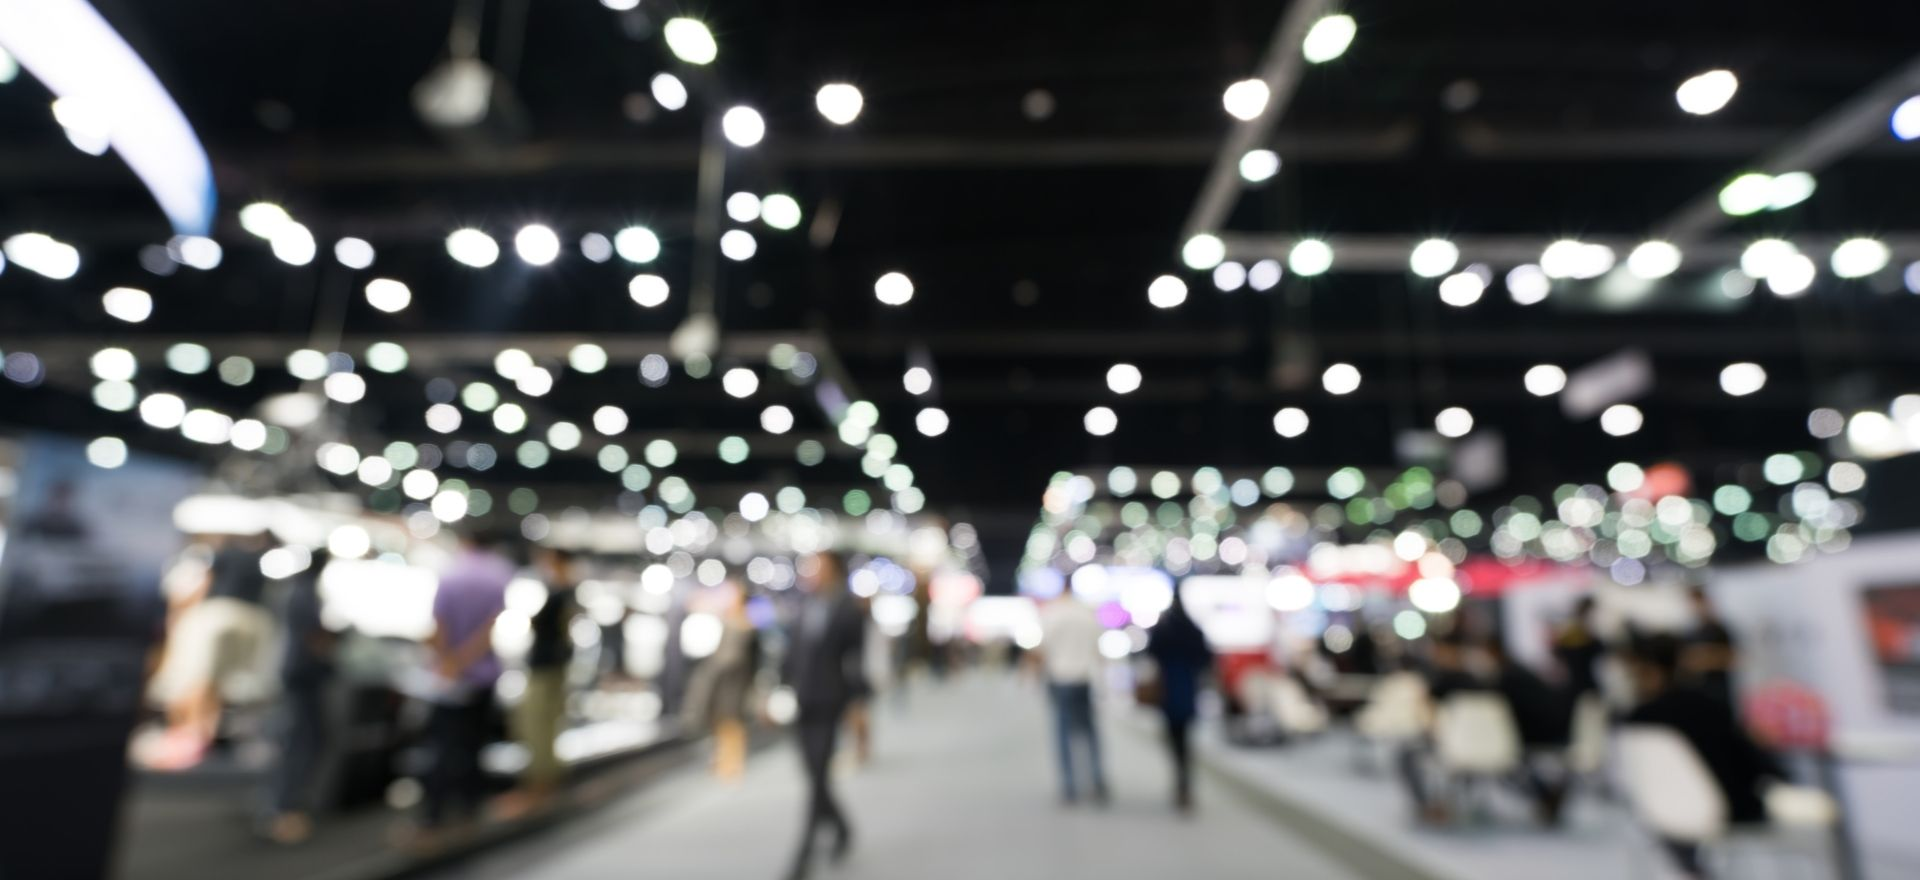 Header image of The Lookout All News Online Events and Virtual Events on Eurovision Village and Hybrid Events Productions Virtual Trade Fair